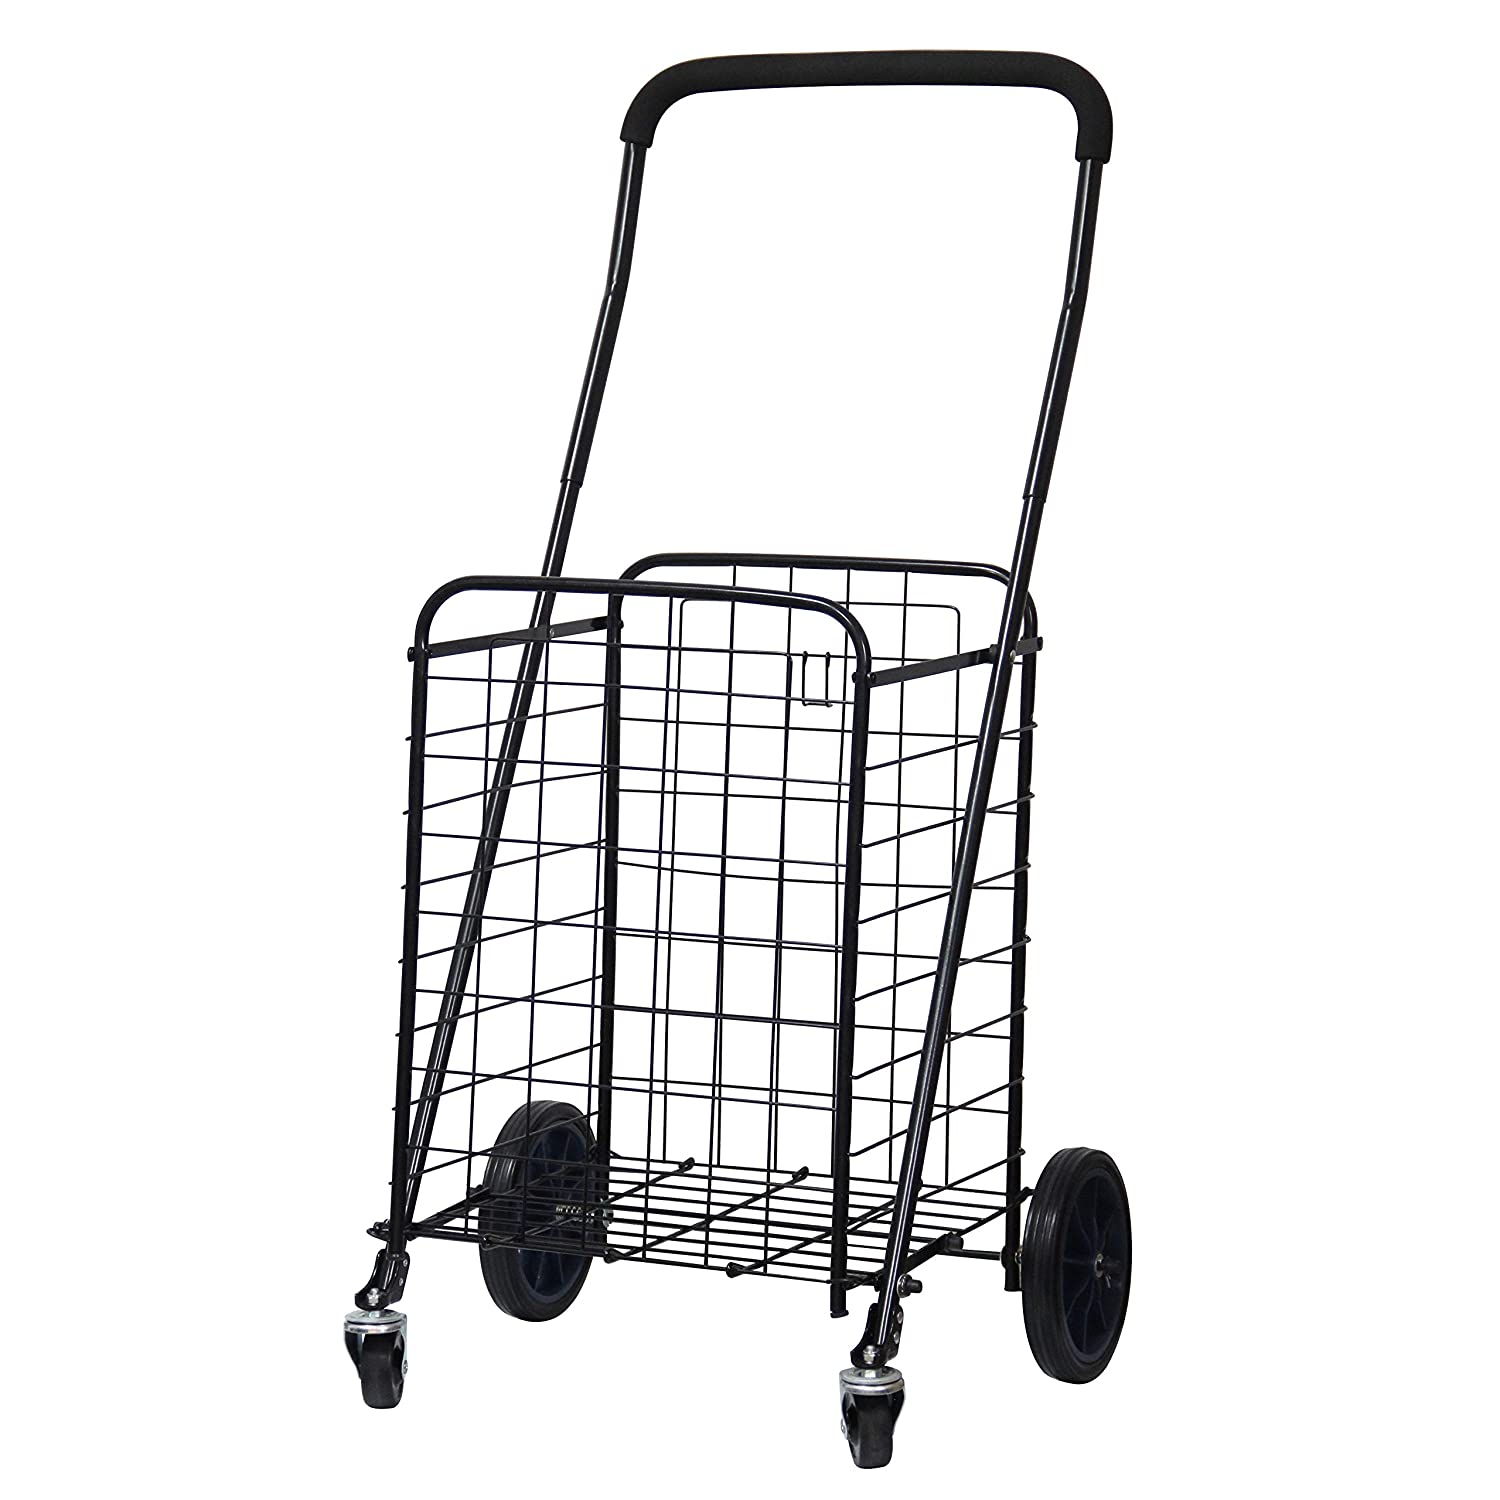 FORUP Utility Shopping Cart with Rolling Swivel Wheels (Black) SC-01